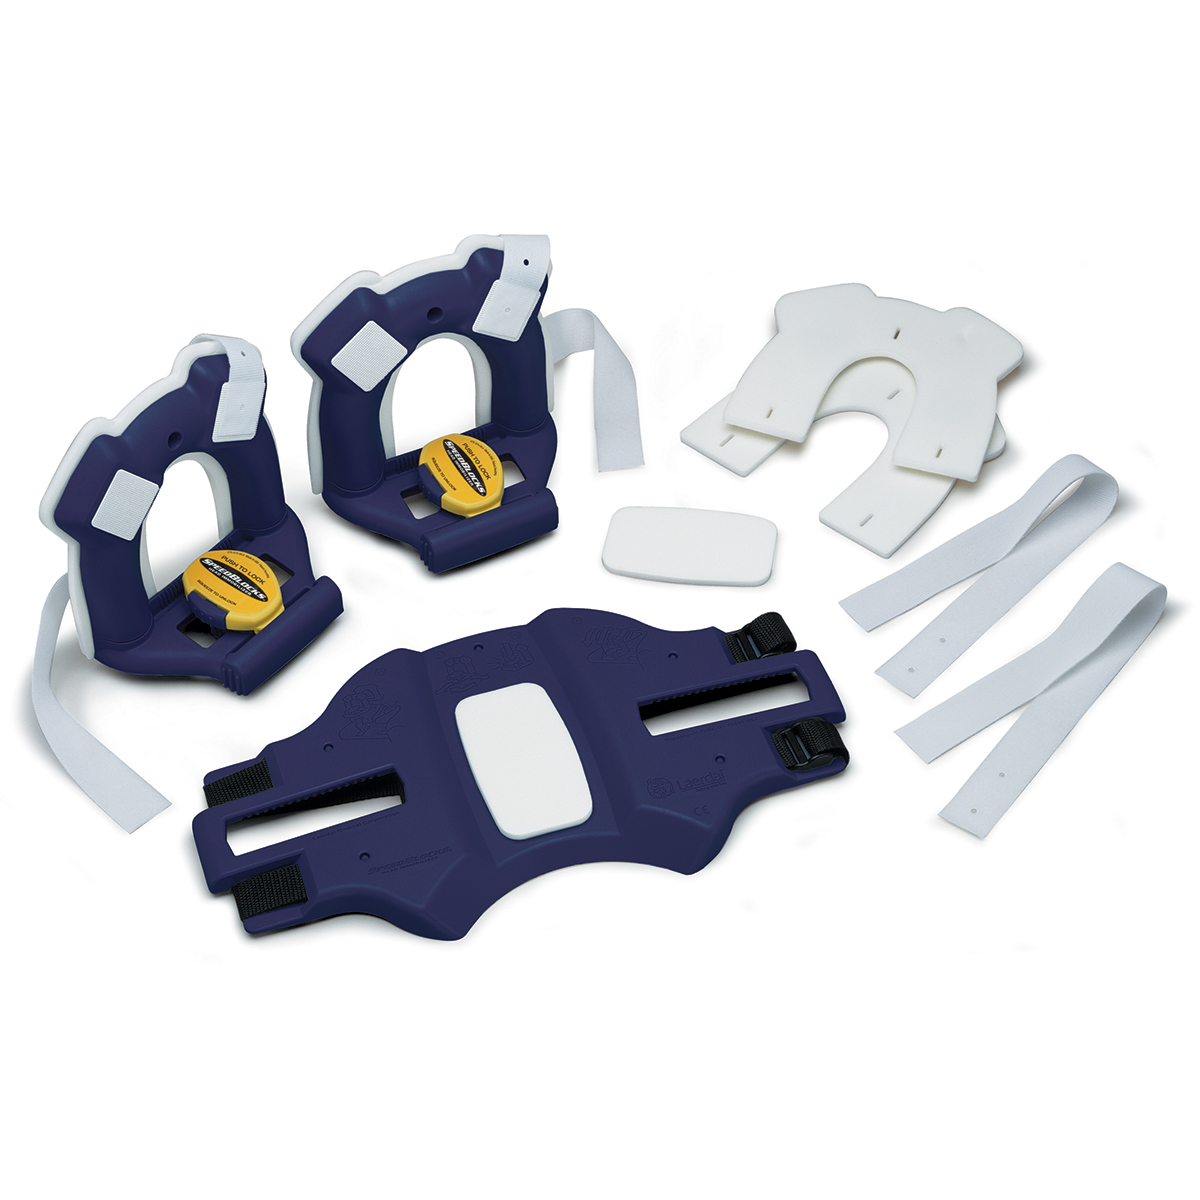 Speedblock Strap and Pad Replacement Set